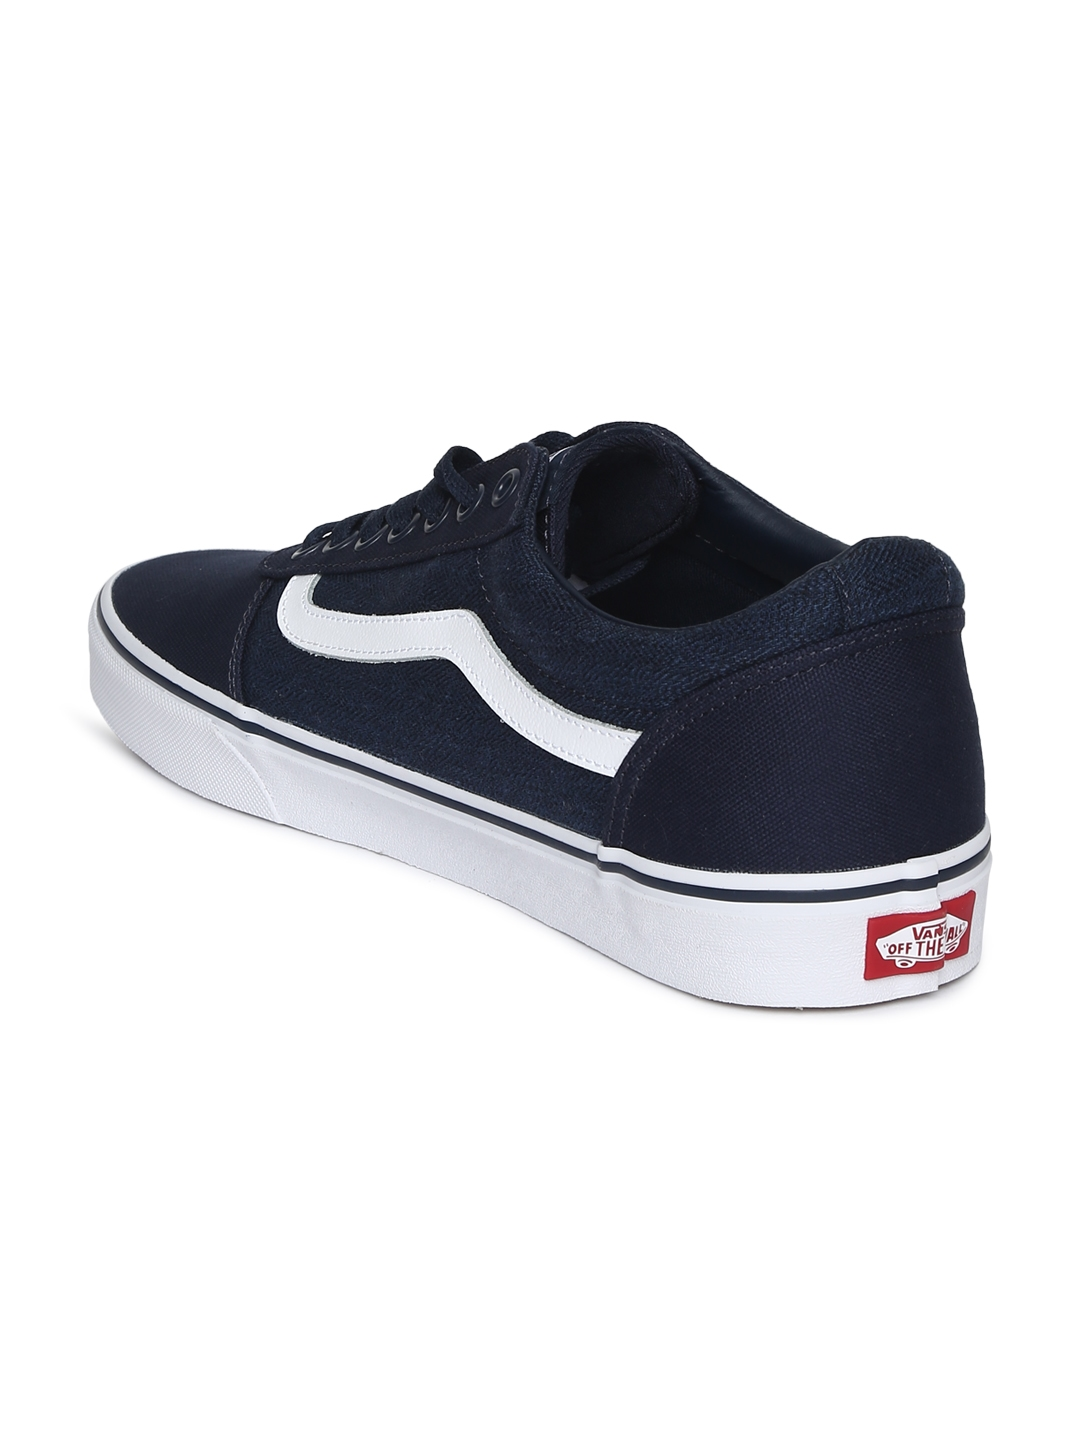 3a739cd42a571a Buy Vans Men Navy Blue Ward Sneakers - Casual Shoes for Men 7301215 ...